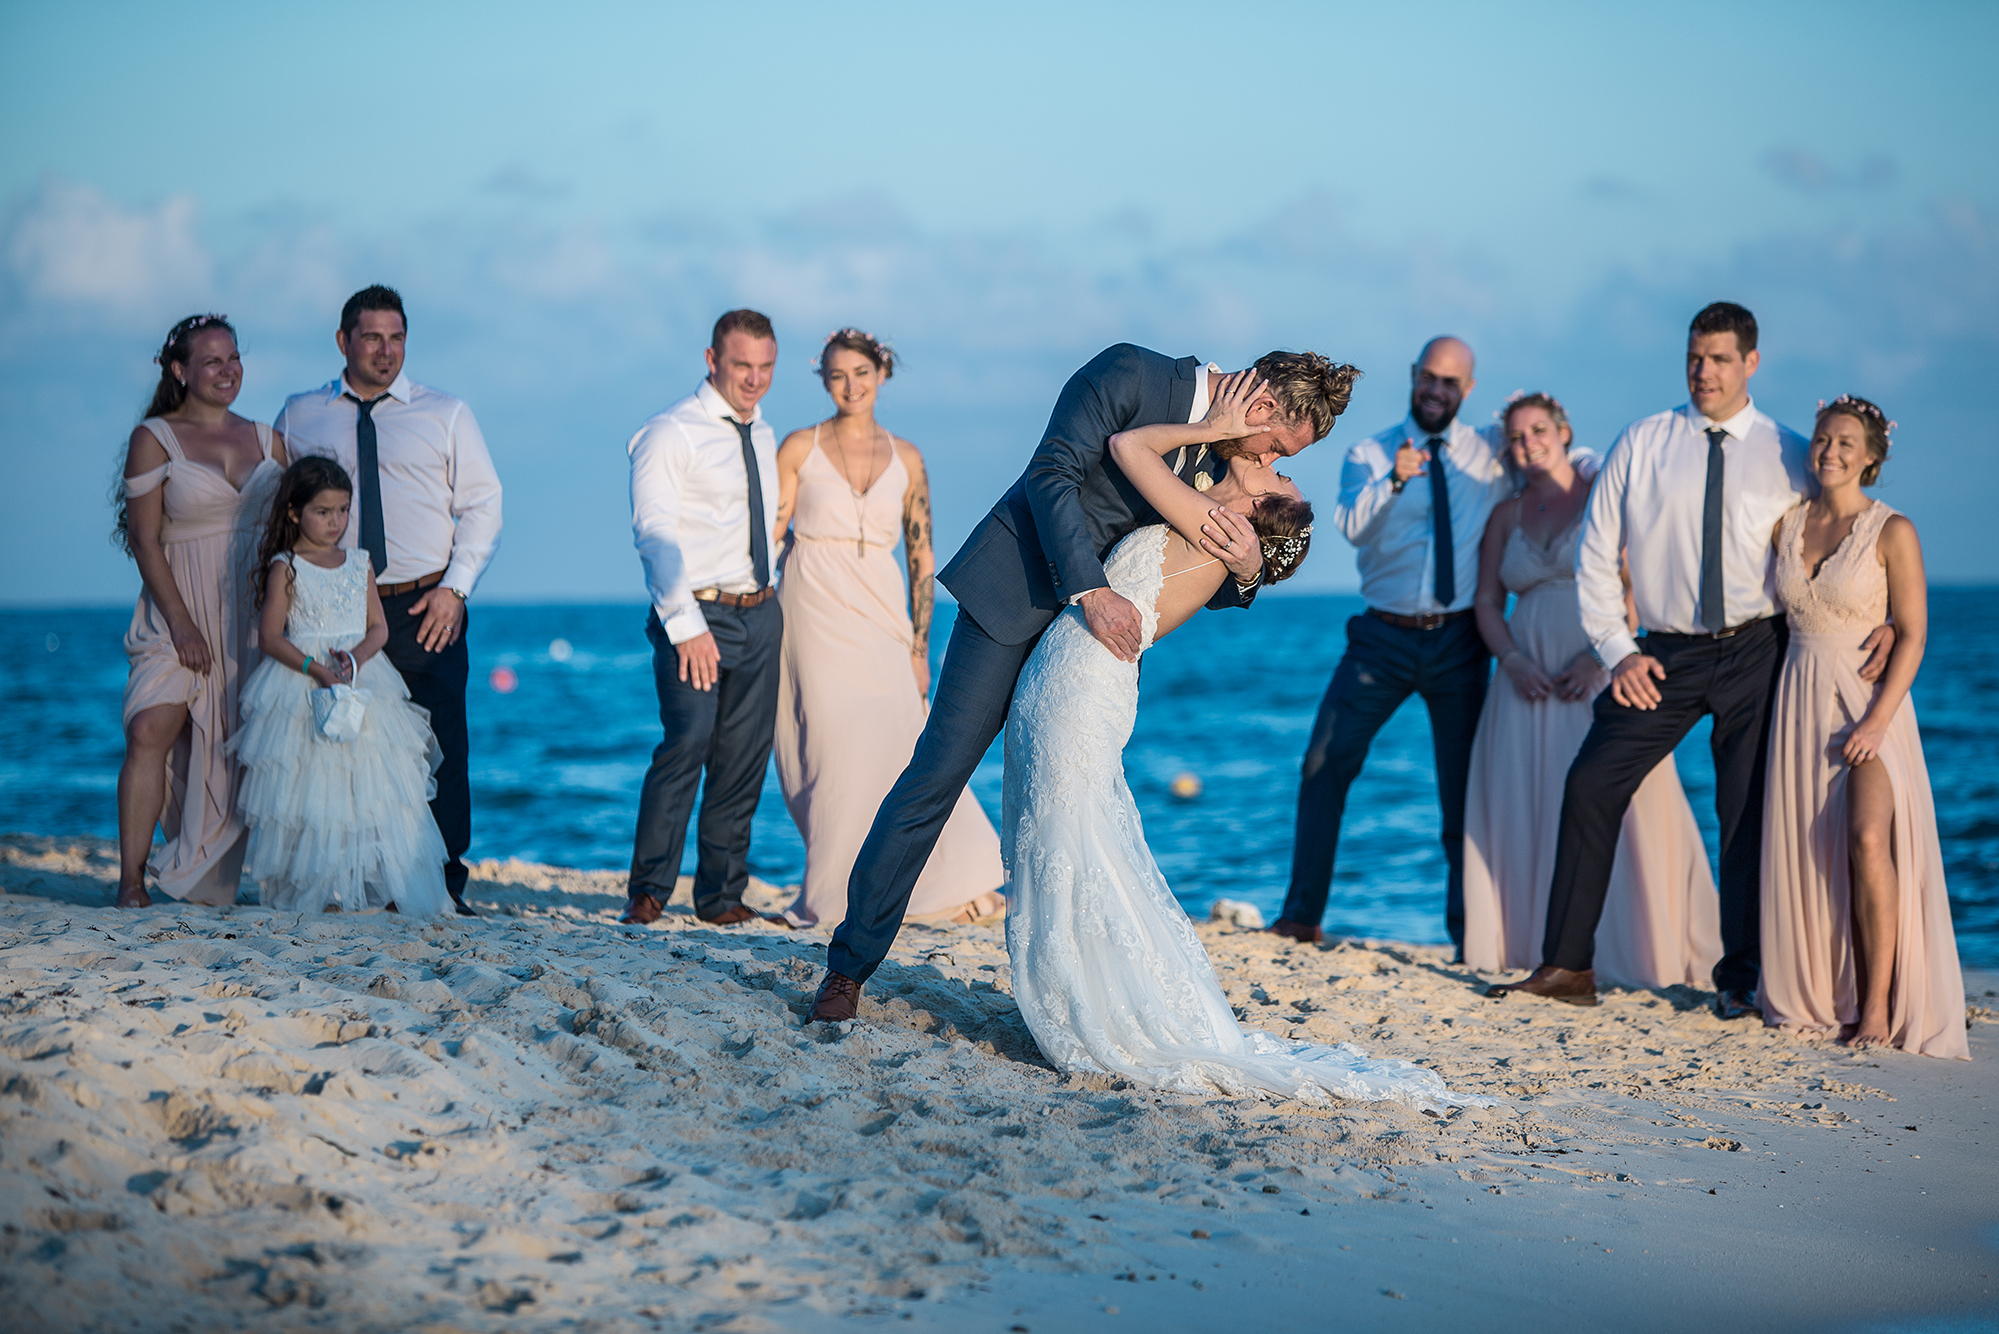 This image shows how we cover destination weddings